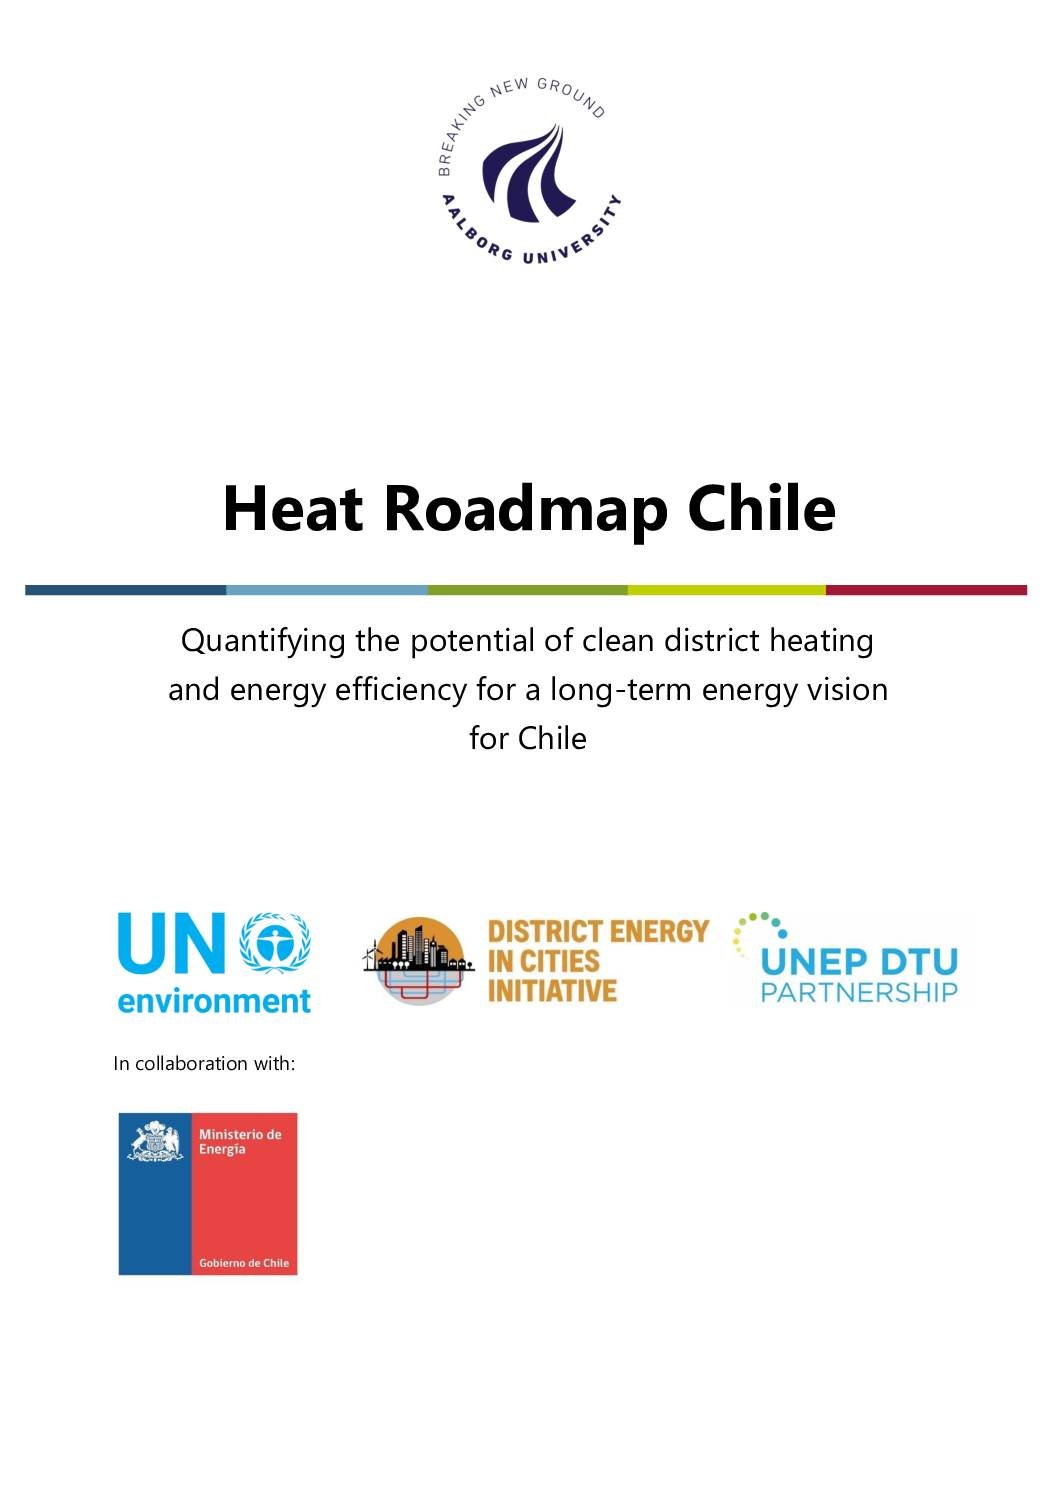 Heat Roadmap Chile; Quantifying the potential of clean district heating and energy efficiency for a long-term energy vision for Chile